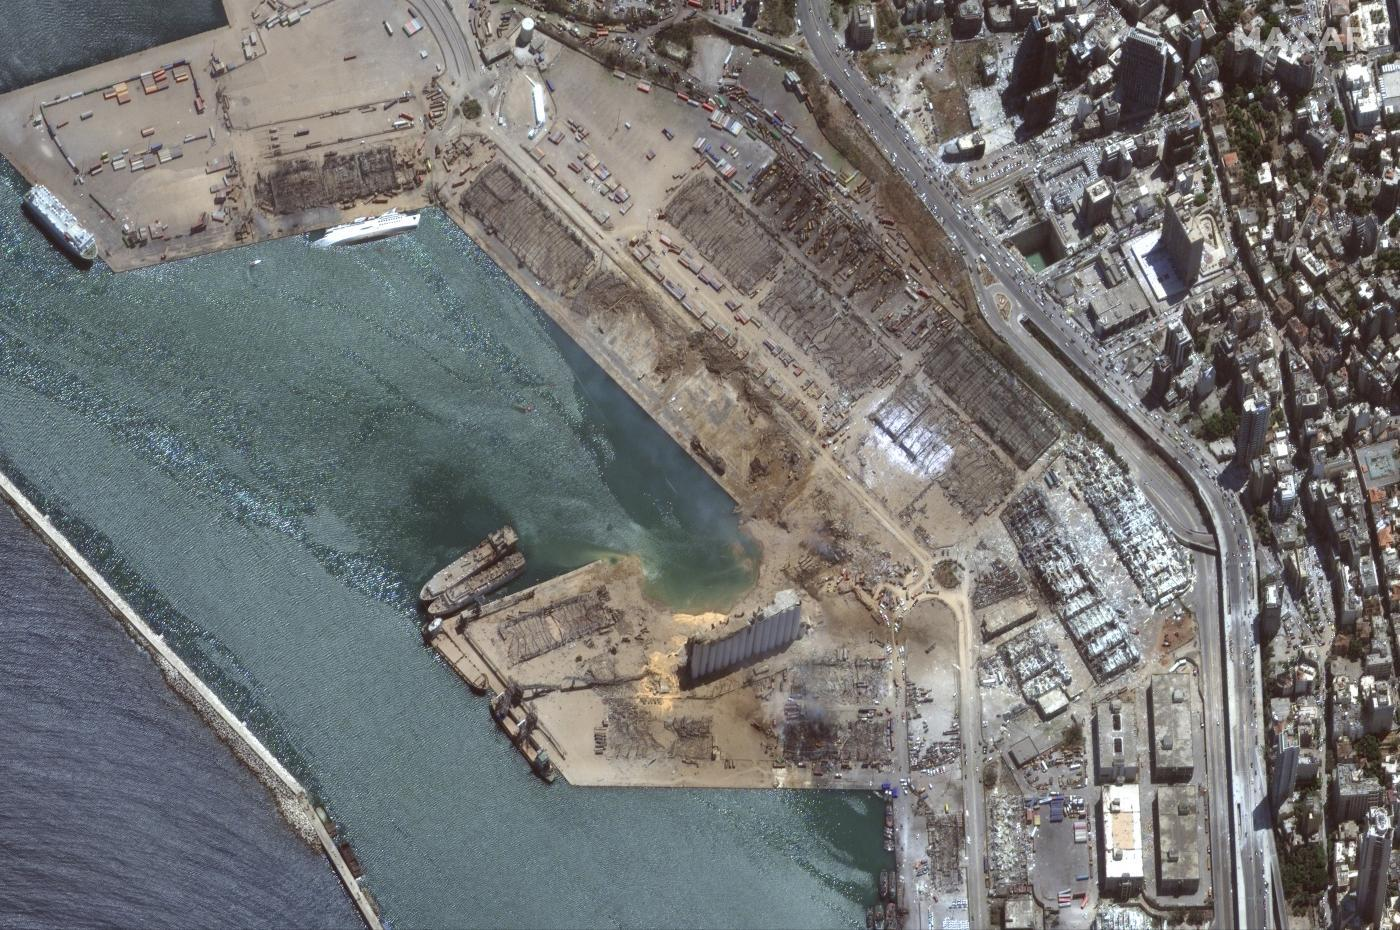 Satellite images show the impact on Beirut's port